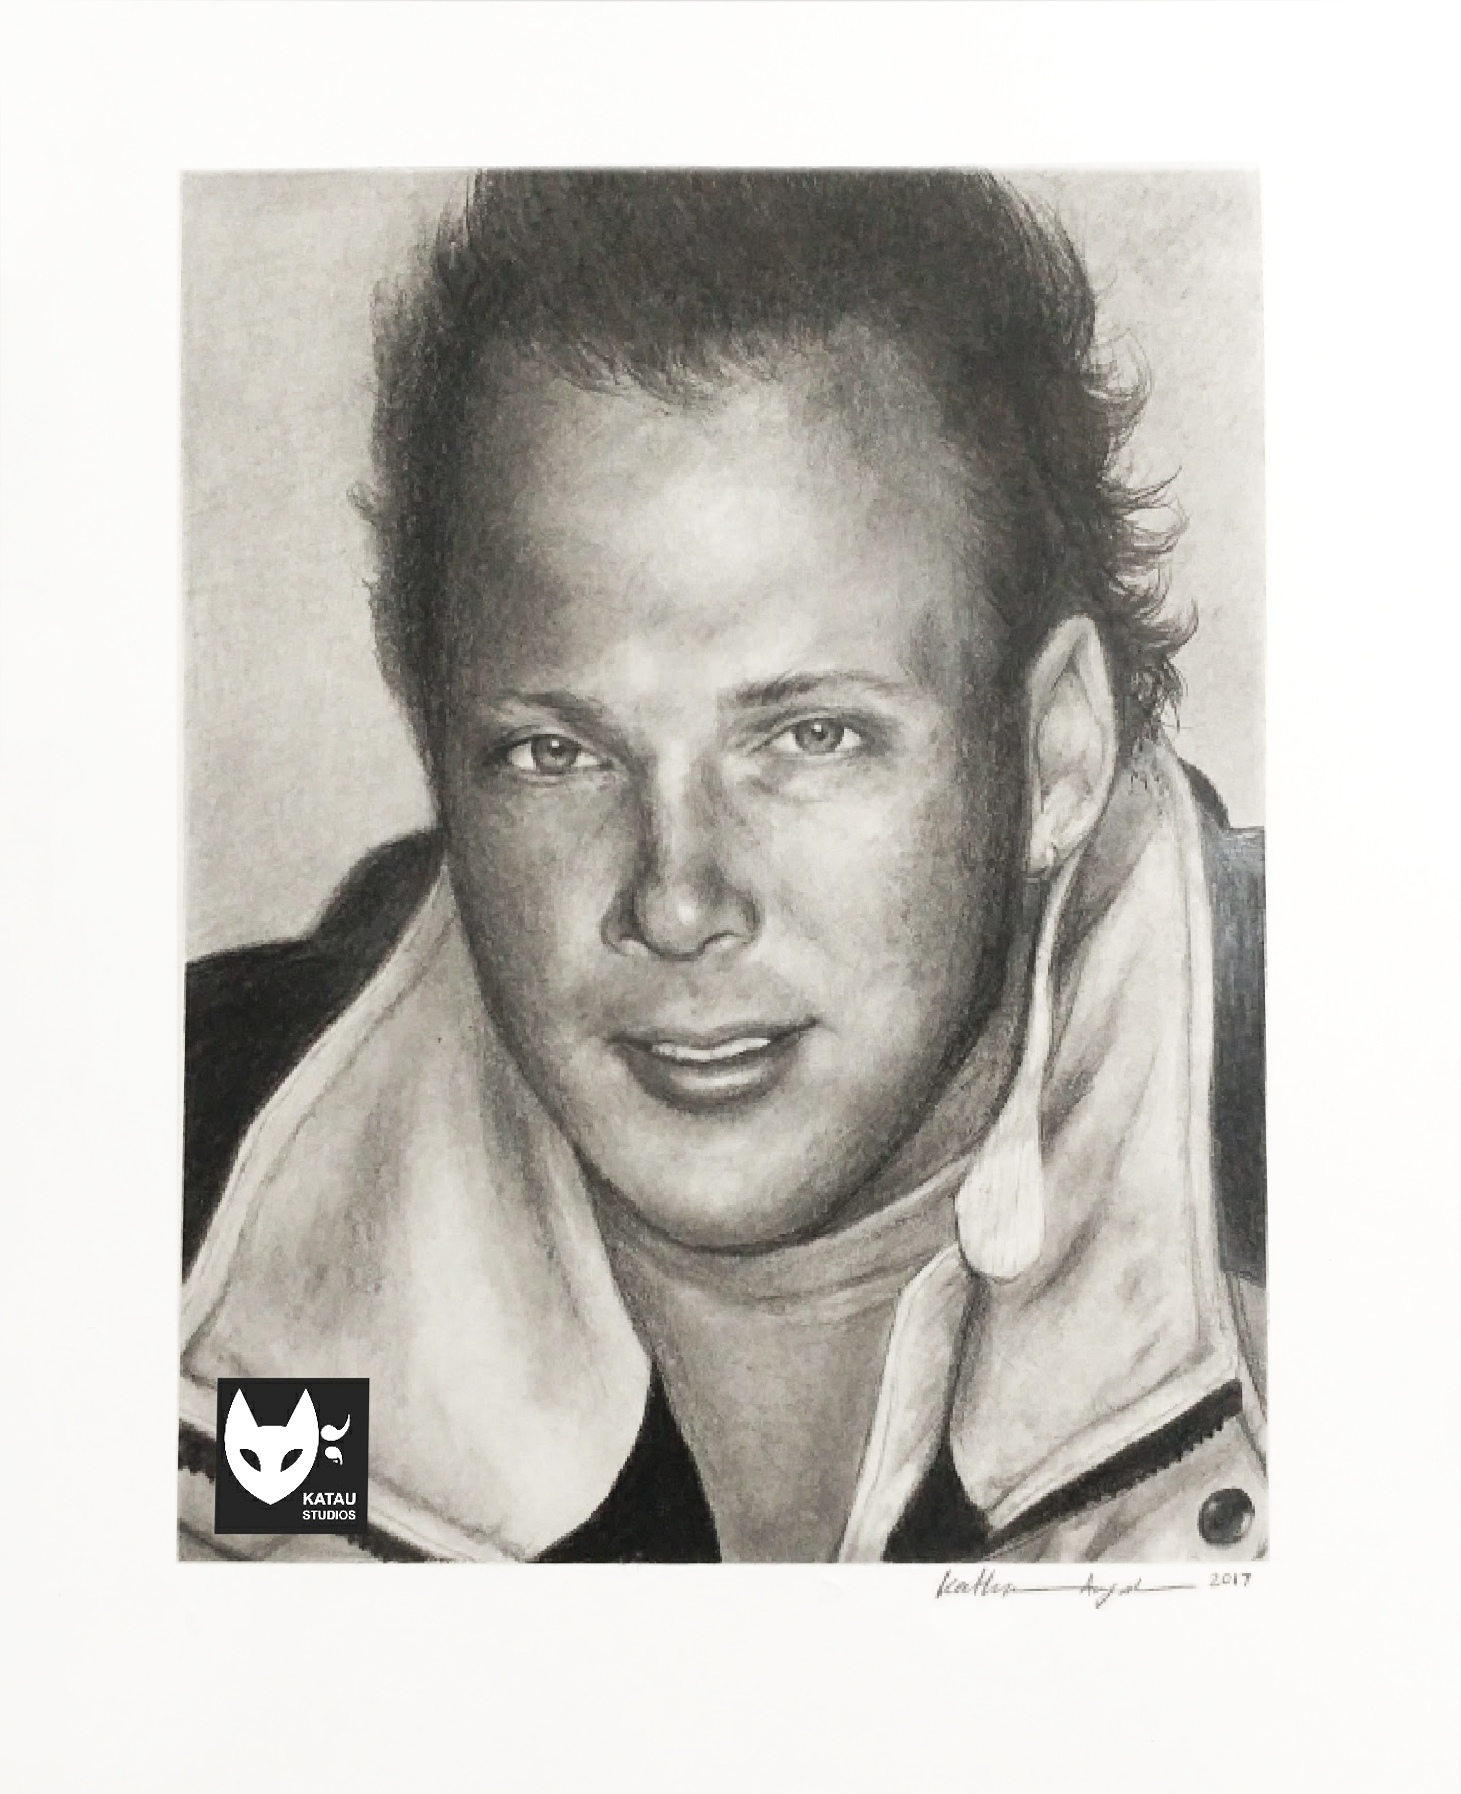 Eric Graphite Portrait Drawing Full by Katherine Augade